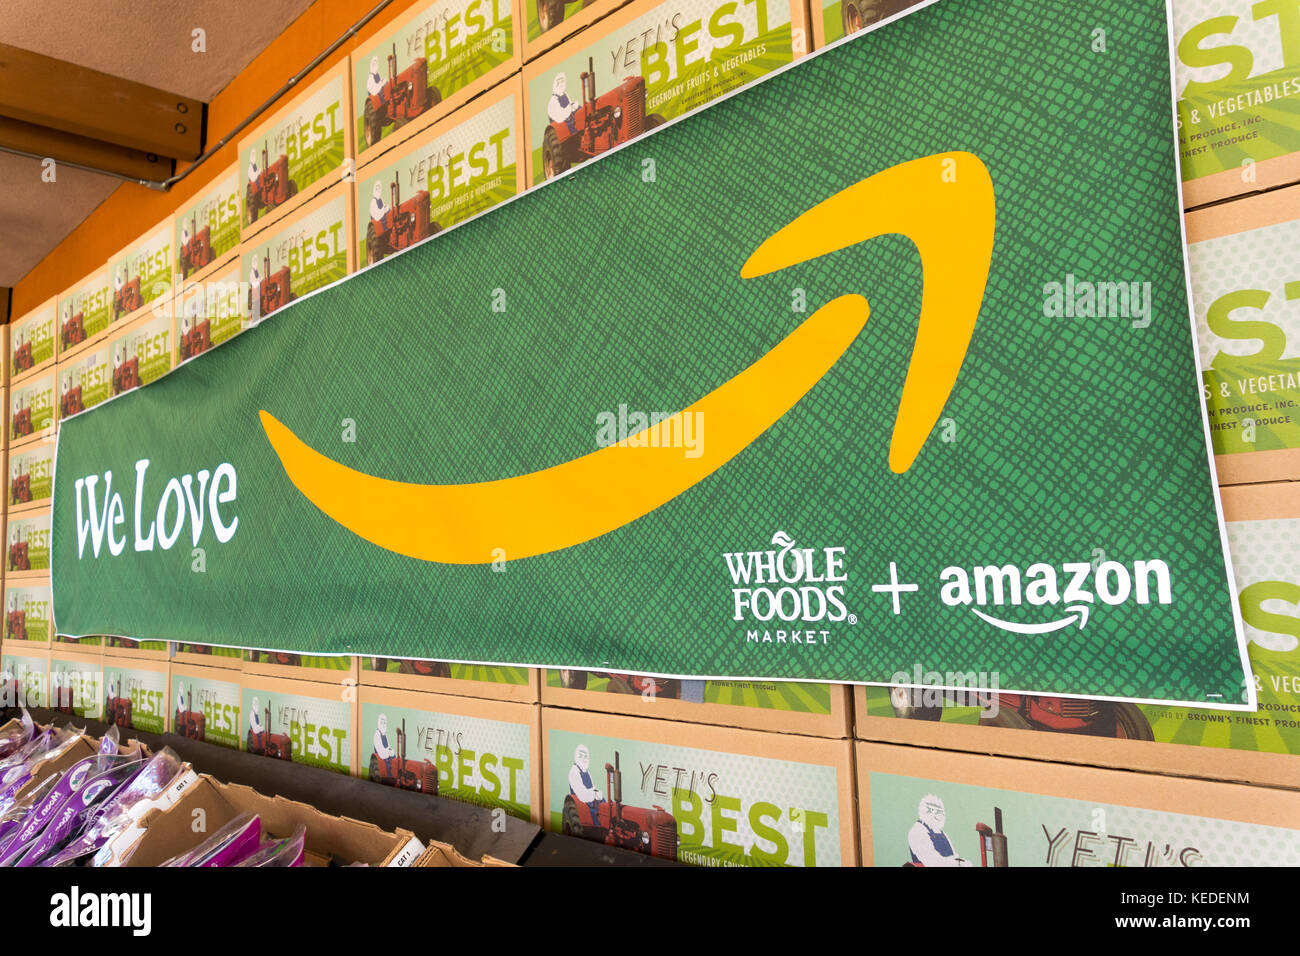 https://c7.alamy.com/comp/KEDENM/amazon-and-whole-foods-sign-on-cupertino-whole-foods-market-store-KEDENM.jpg